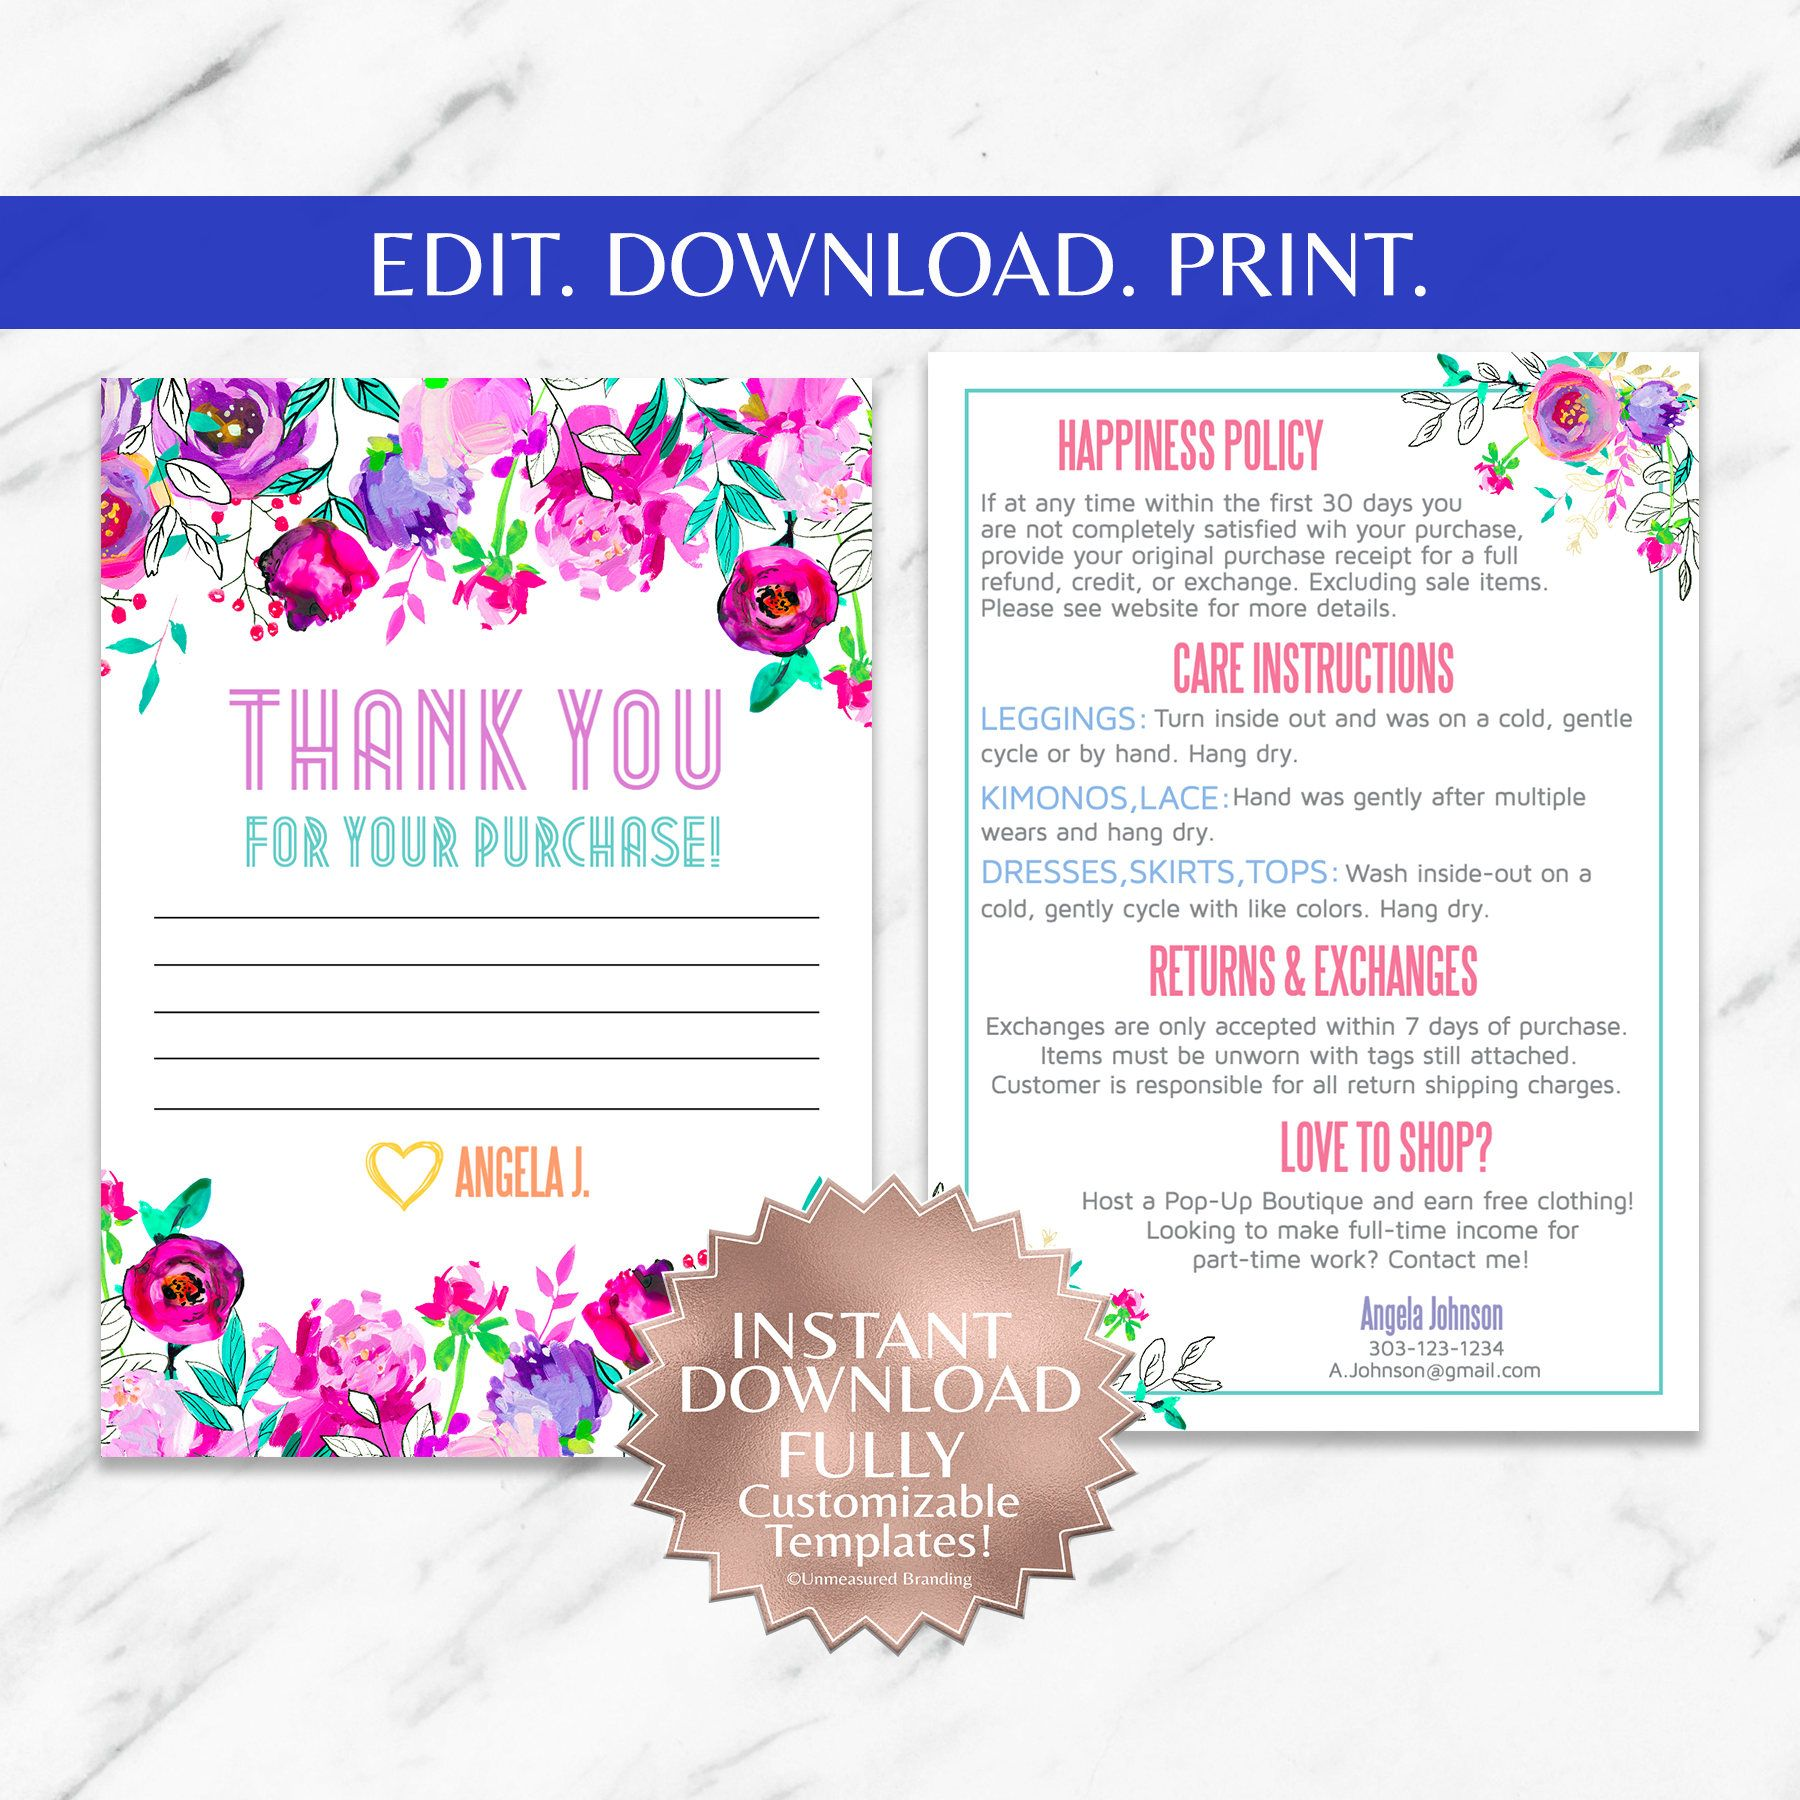 Instant Customizable Floral Fashion Consultant And Llr Thank You And Care Instruction Cards Templates Floral Fashion Branding Lace Kimono